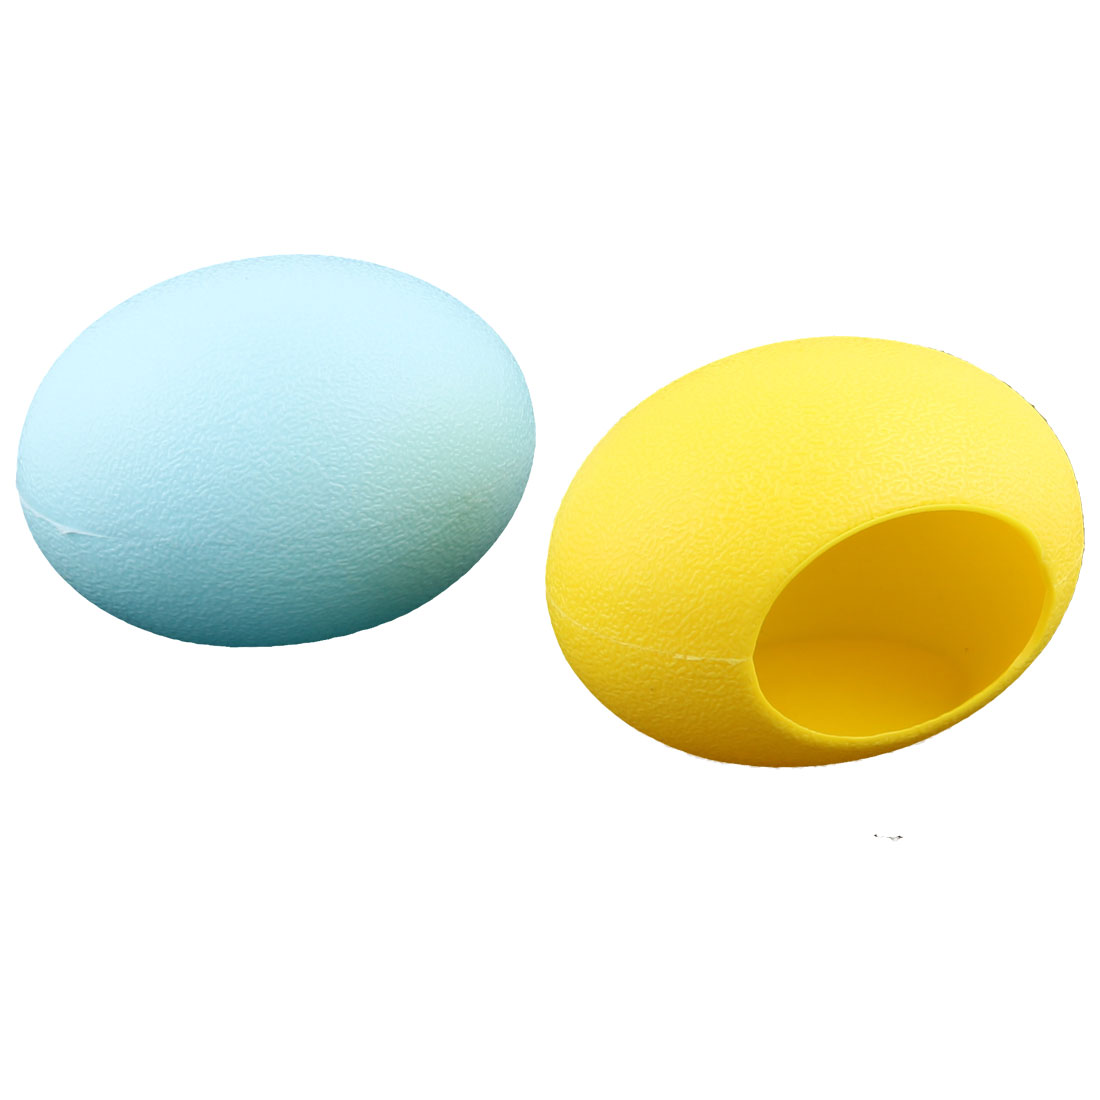 Plastic Egg Shape Small Hamster Mice Mouse Pet House Room Blue Yellow 2pcs